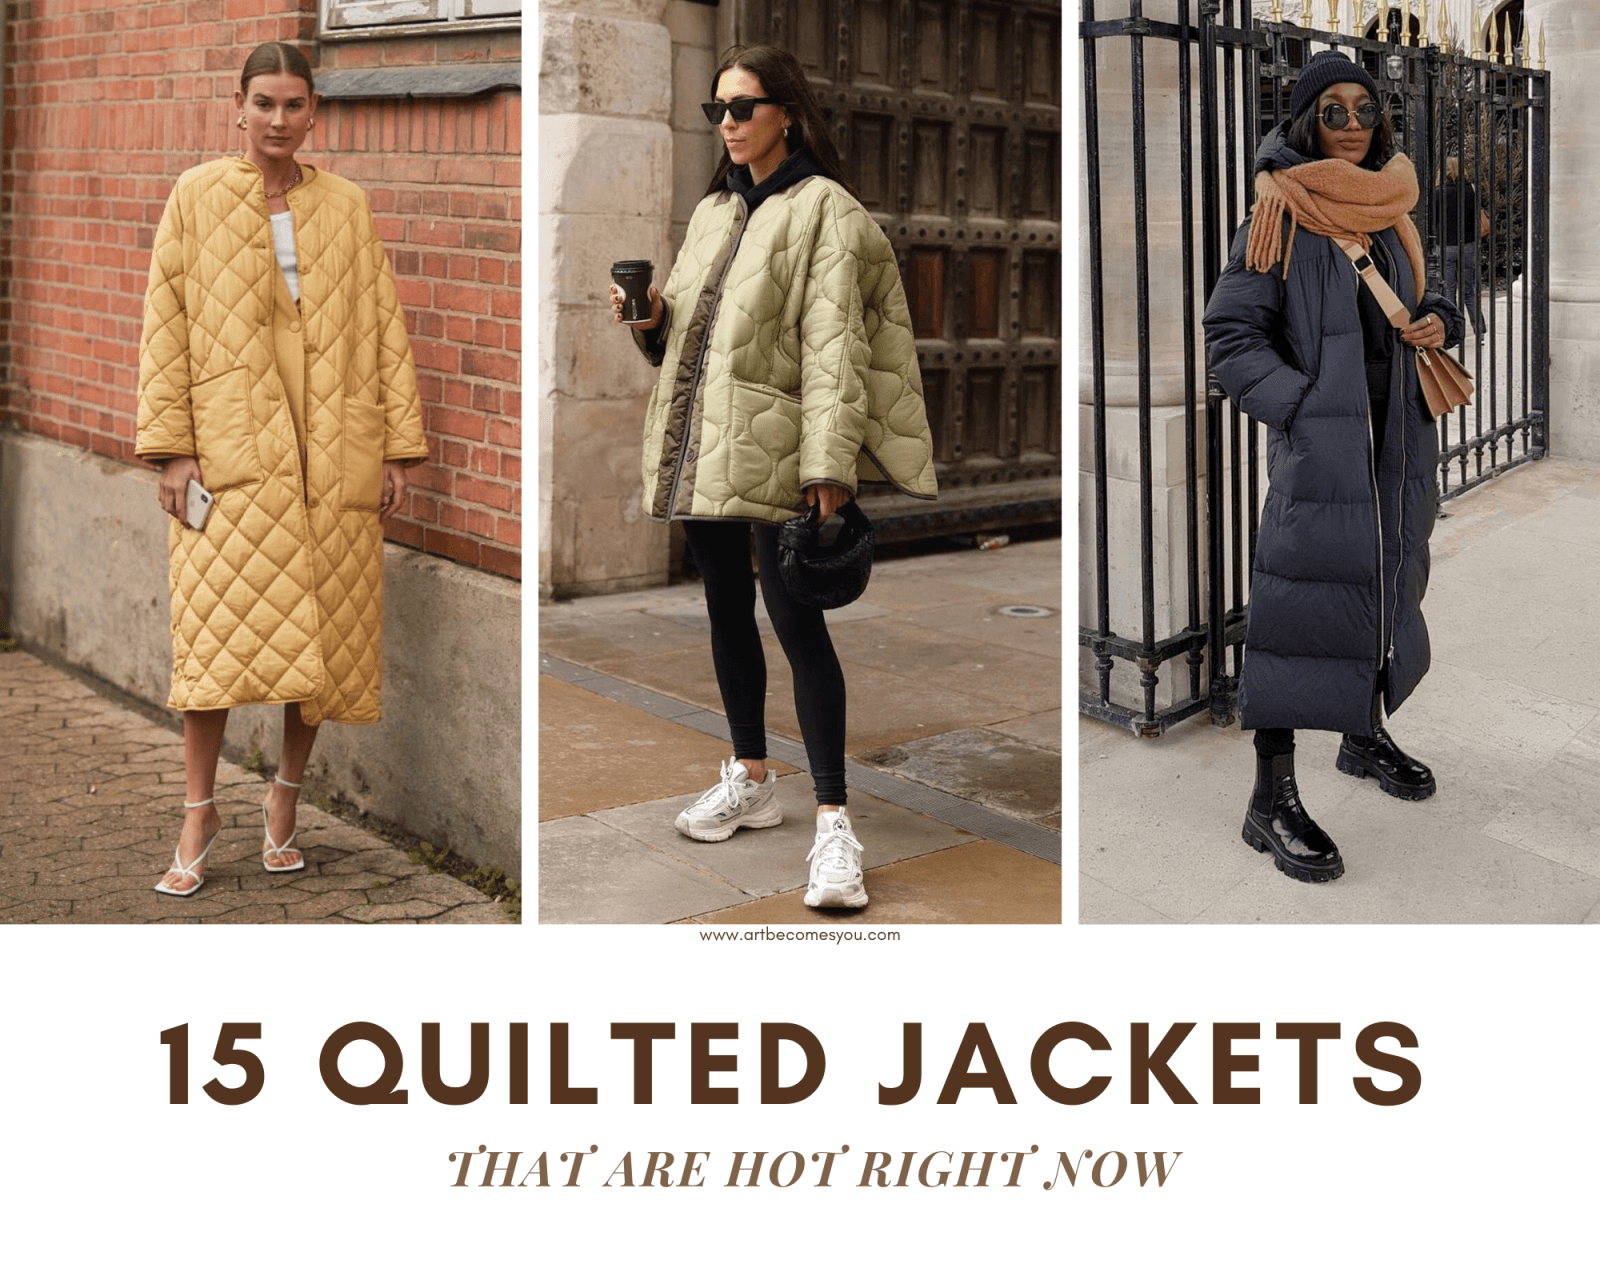 15 QUILTED JACKETS HOT RIGHT NOW